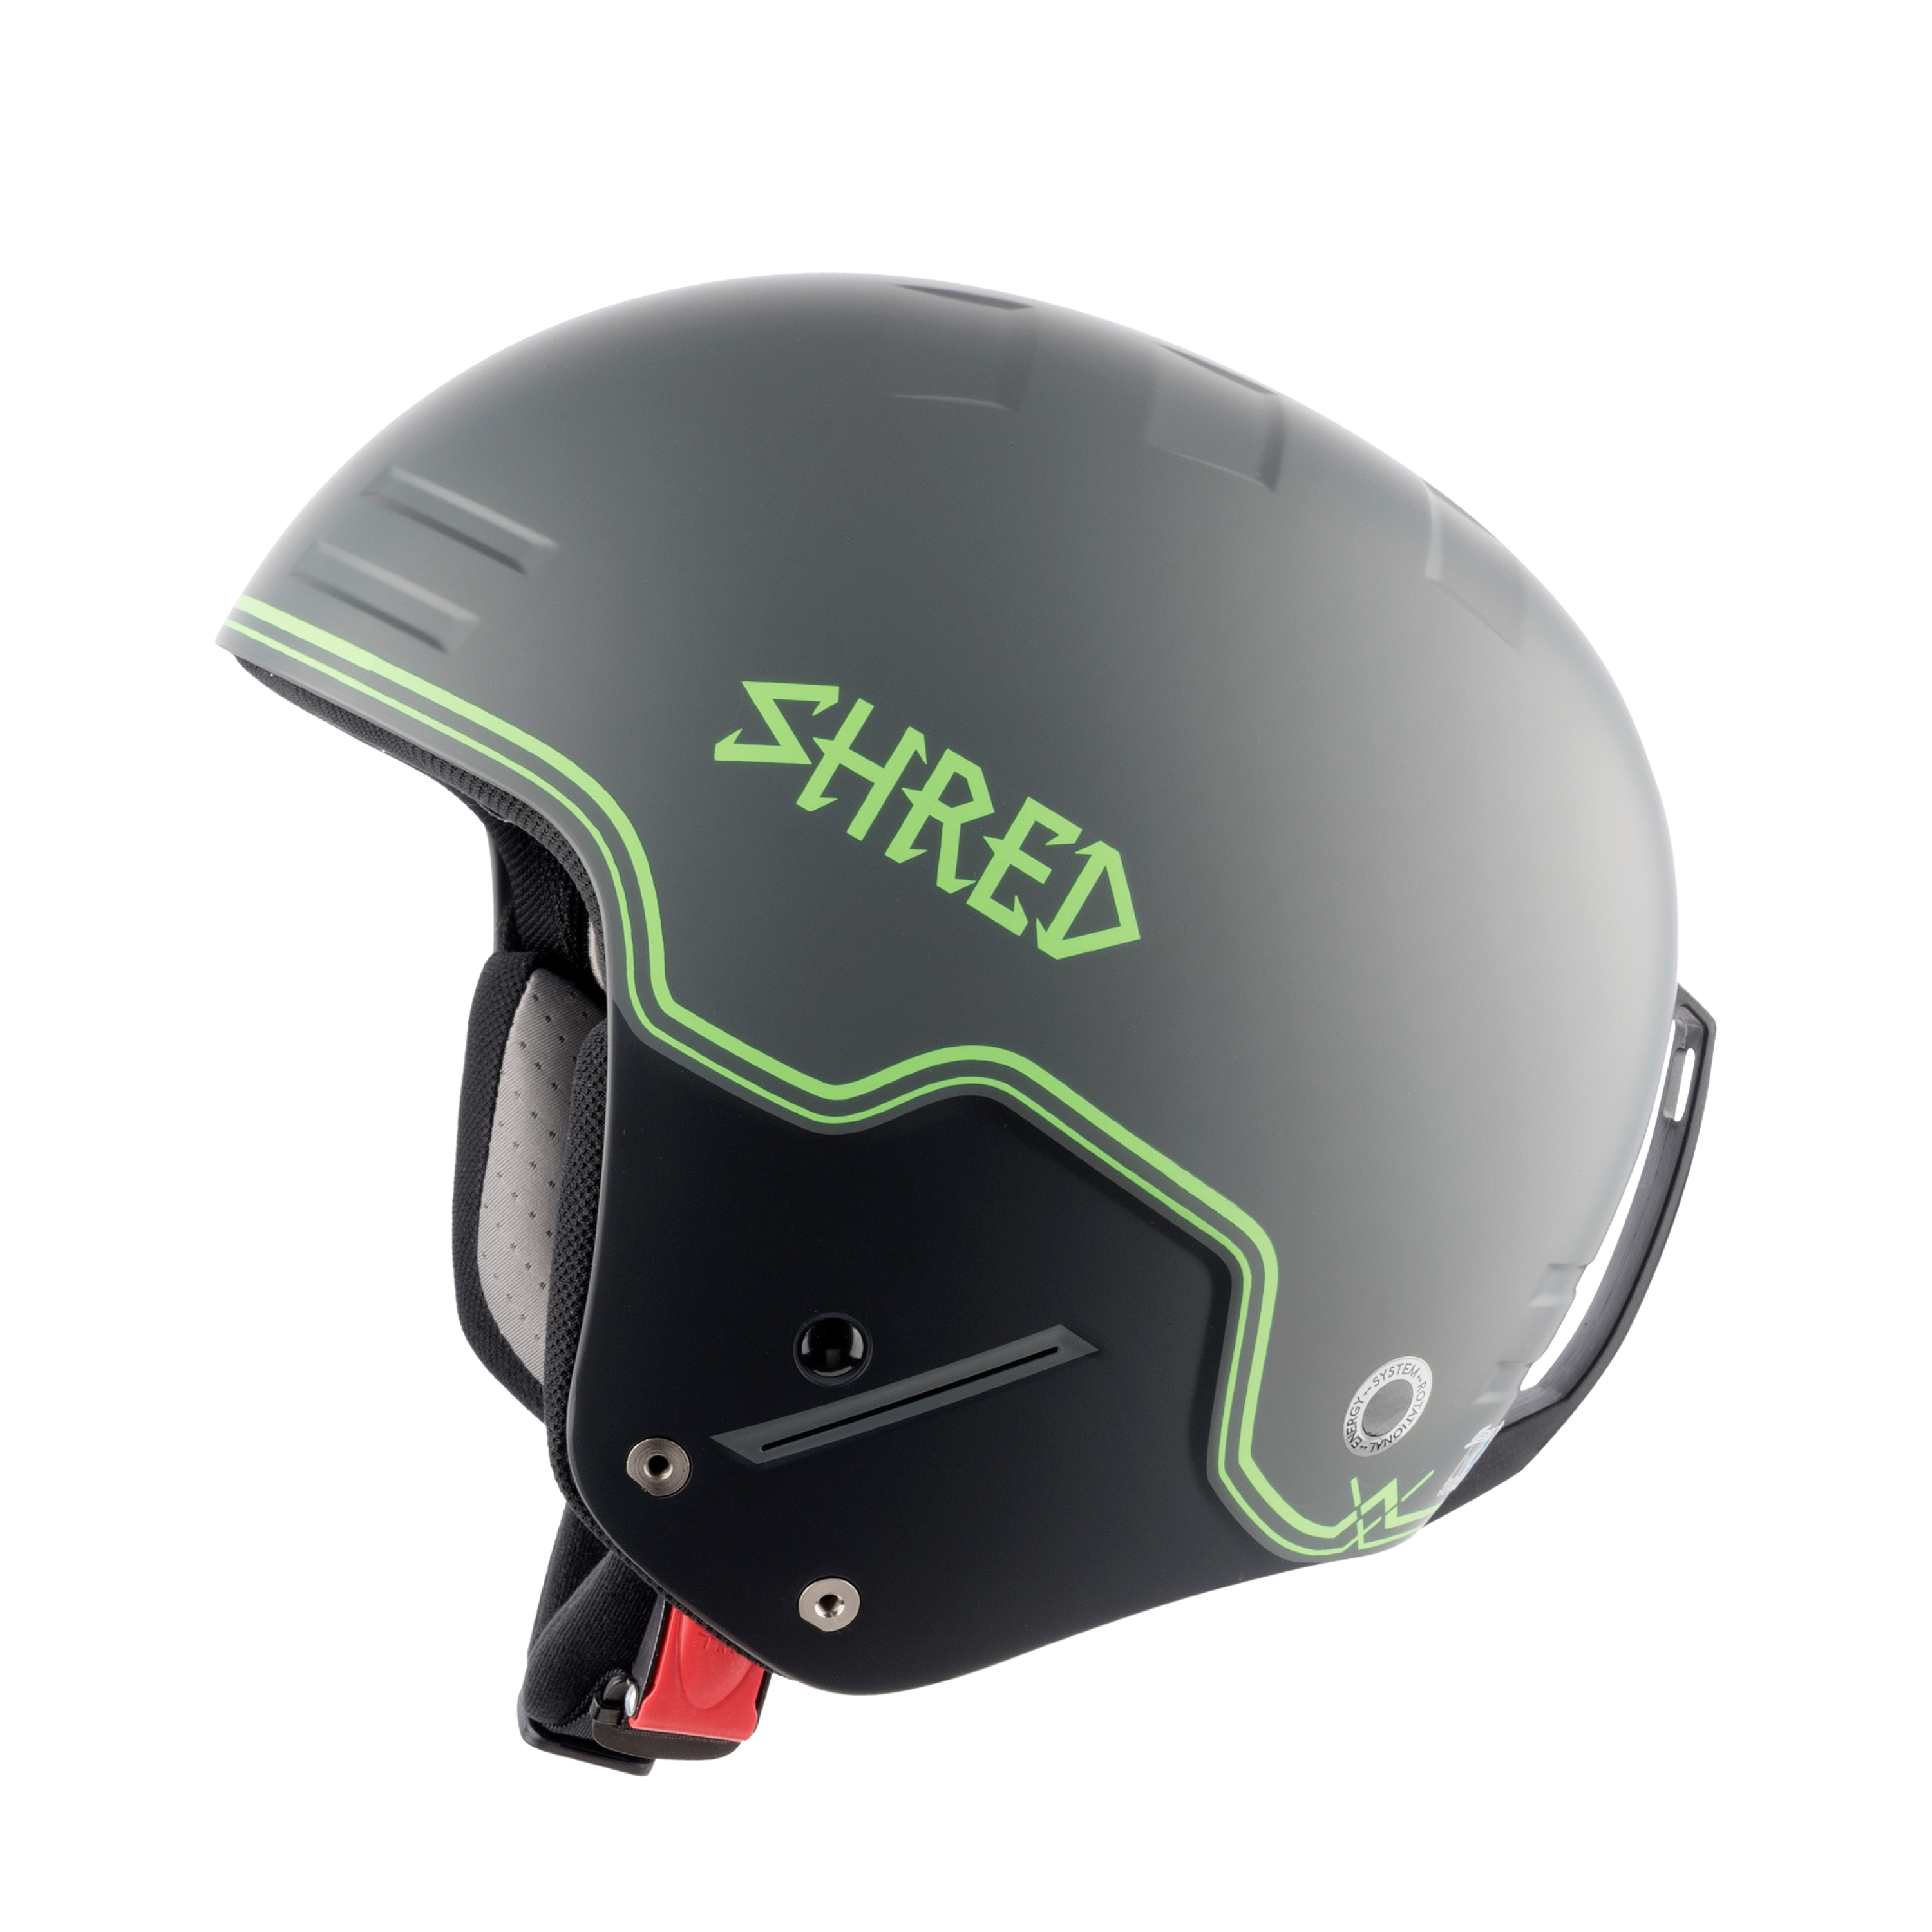 SHRED CASCO BASHER NOSHOCK BIGSHOW GREY-GRN - 2019